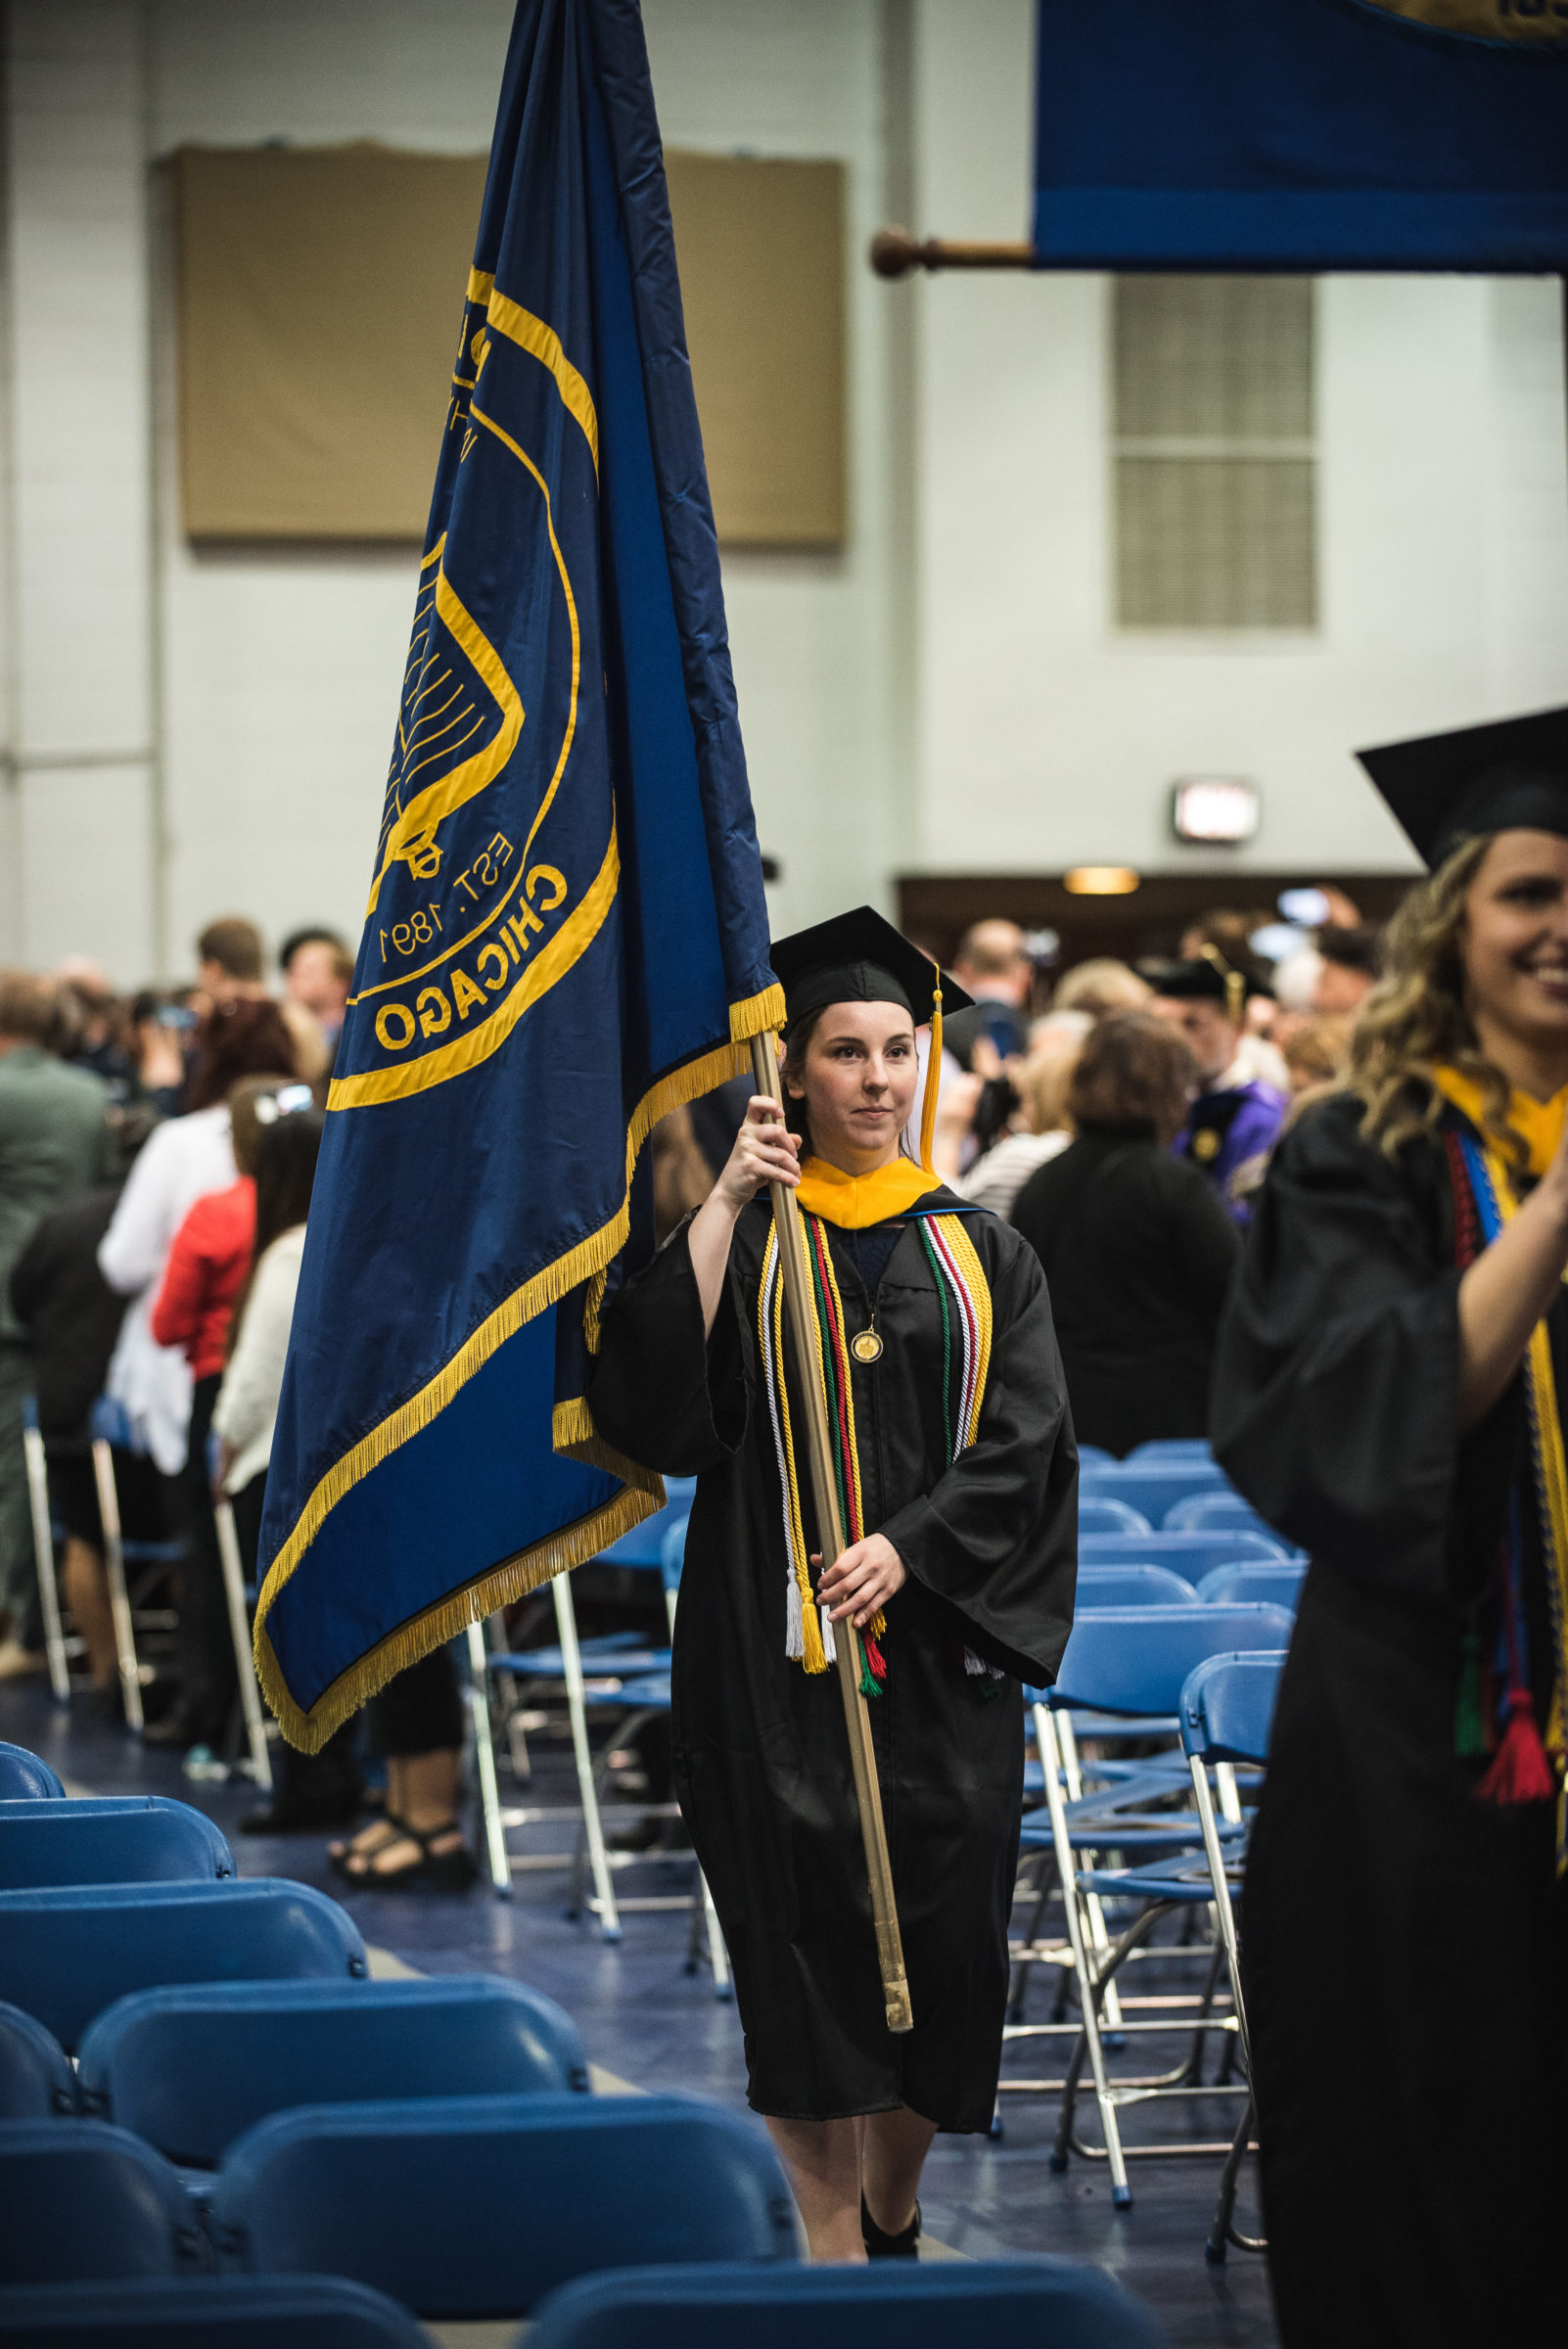 Students walking down the aisle with flags in hand.